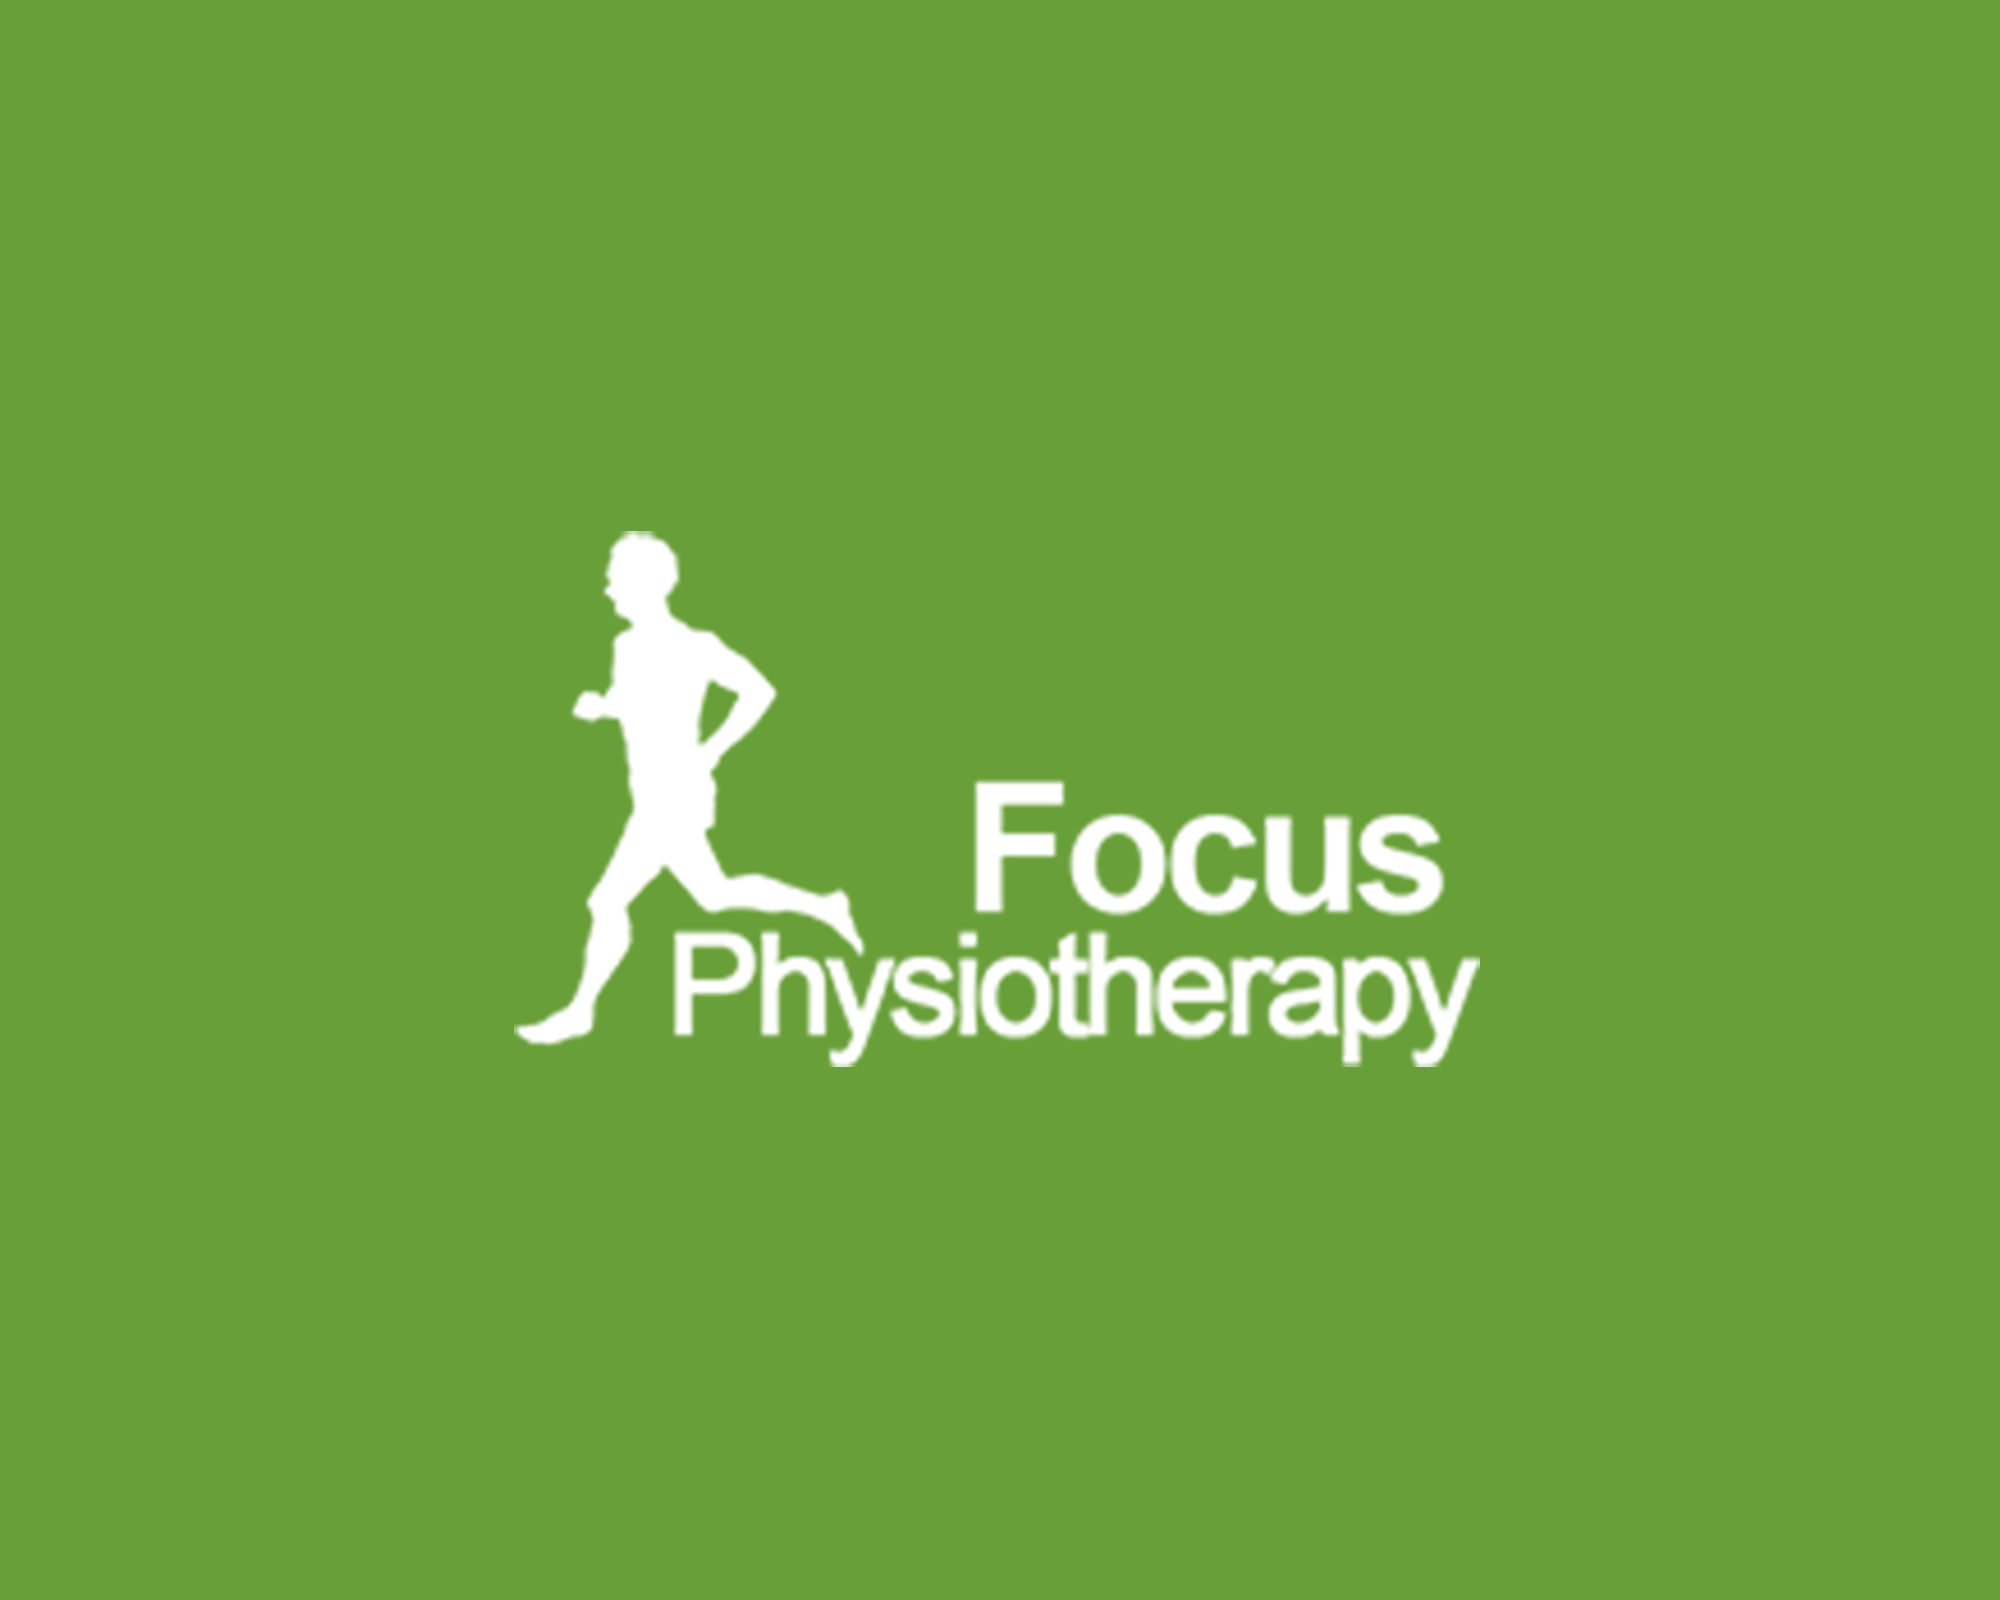 focus physiotherapy Logo